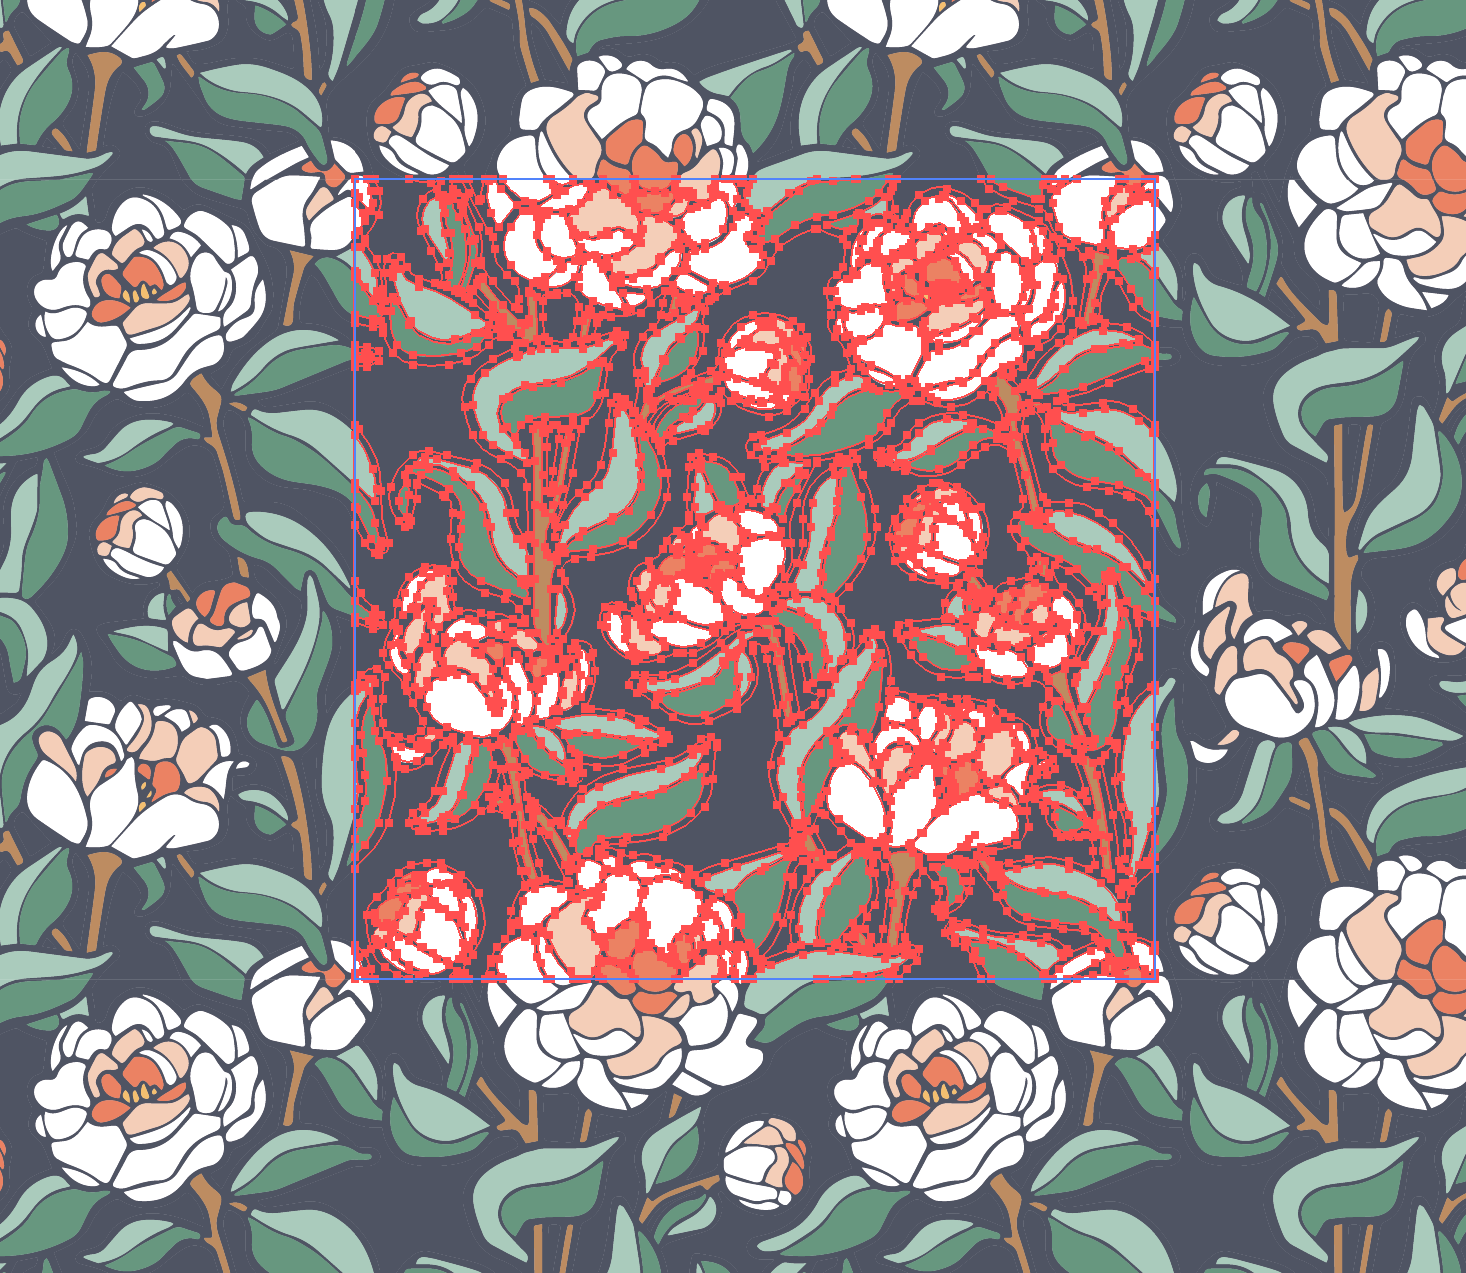 The original repeating block of the Coral Charm Peony pattern.